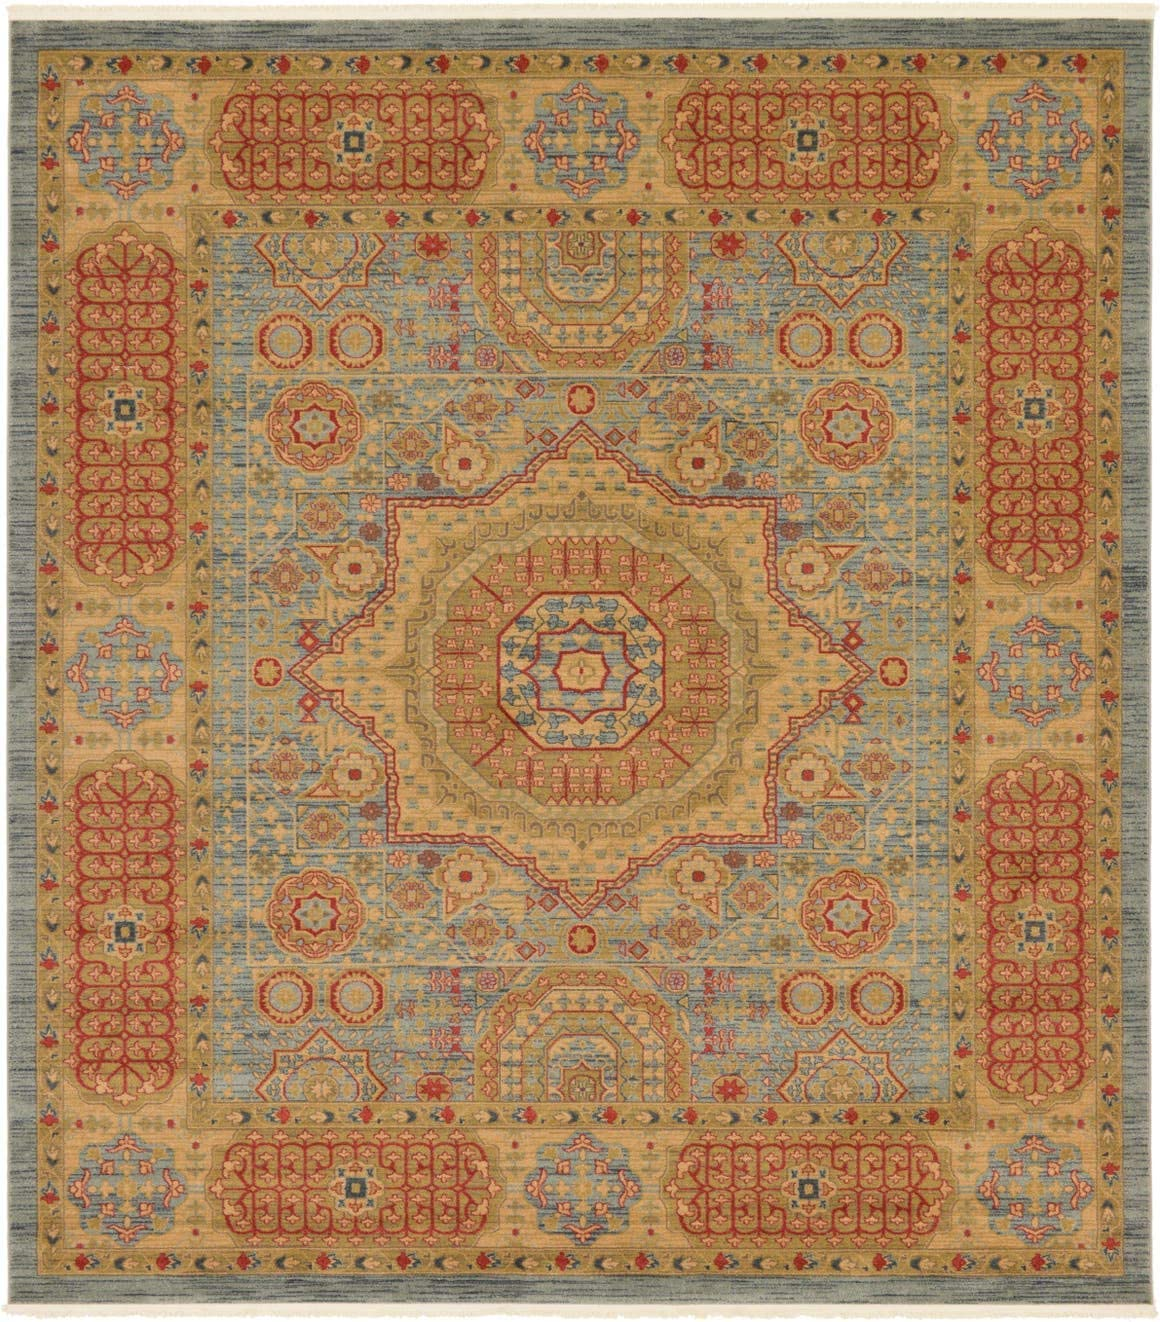 Unique Loom Palace Collection Traditoinal Geometric Classic Light Blue Square Rug 10 0 x 11 4